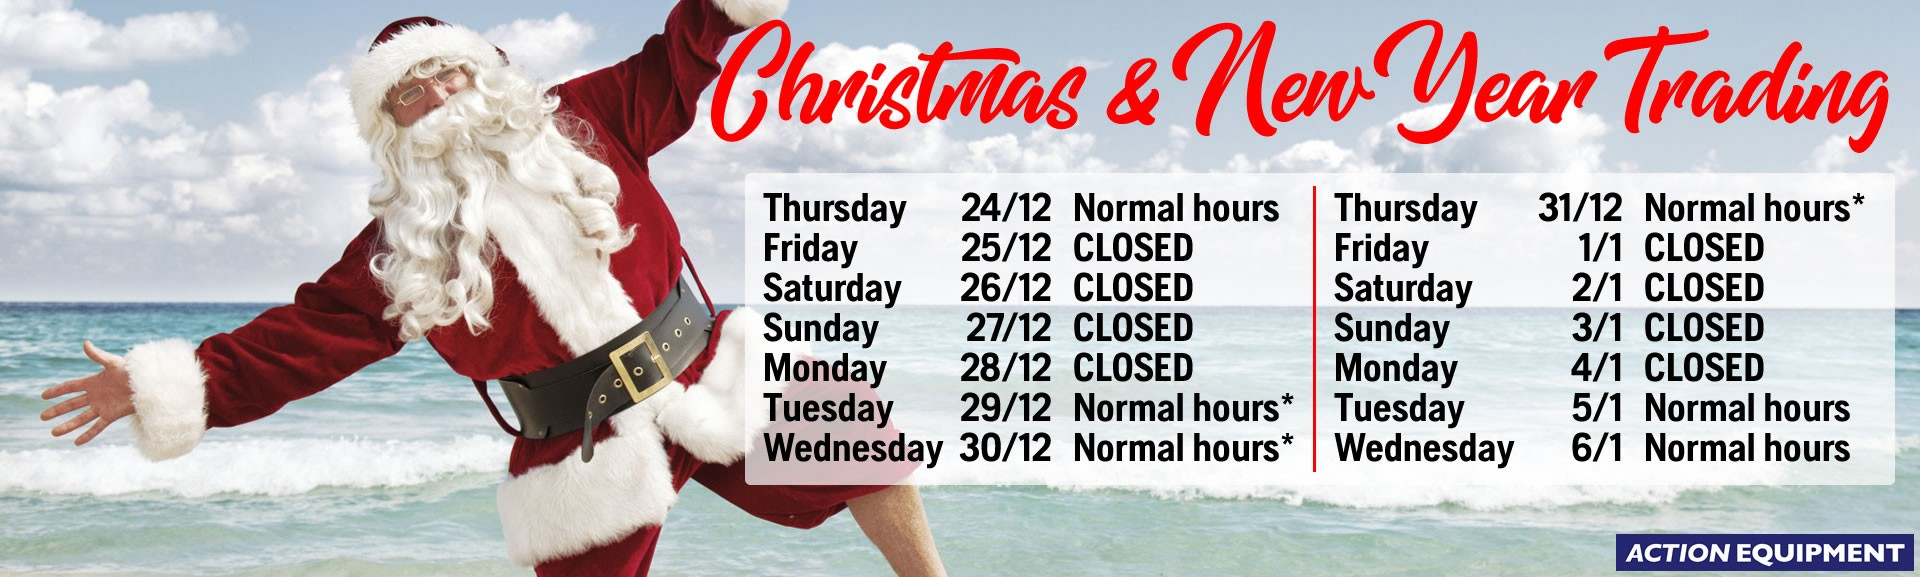 Trading hours: Xmas/New Year 2020-2021